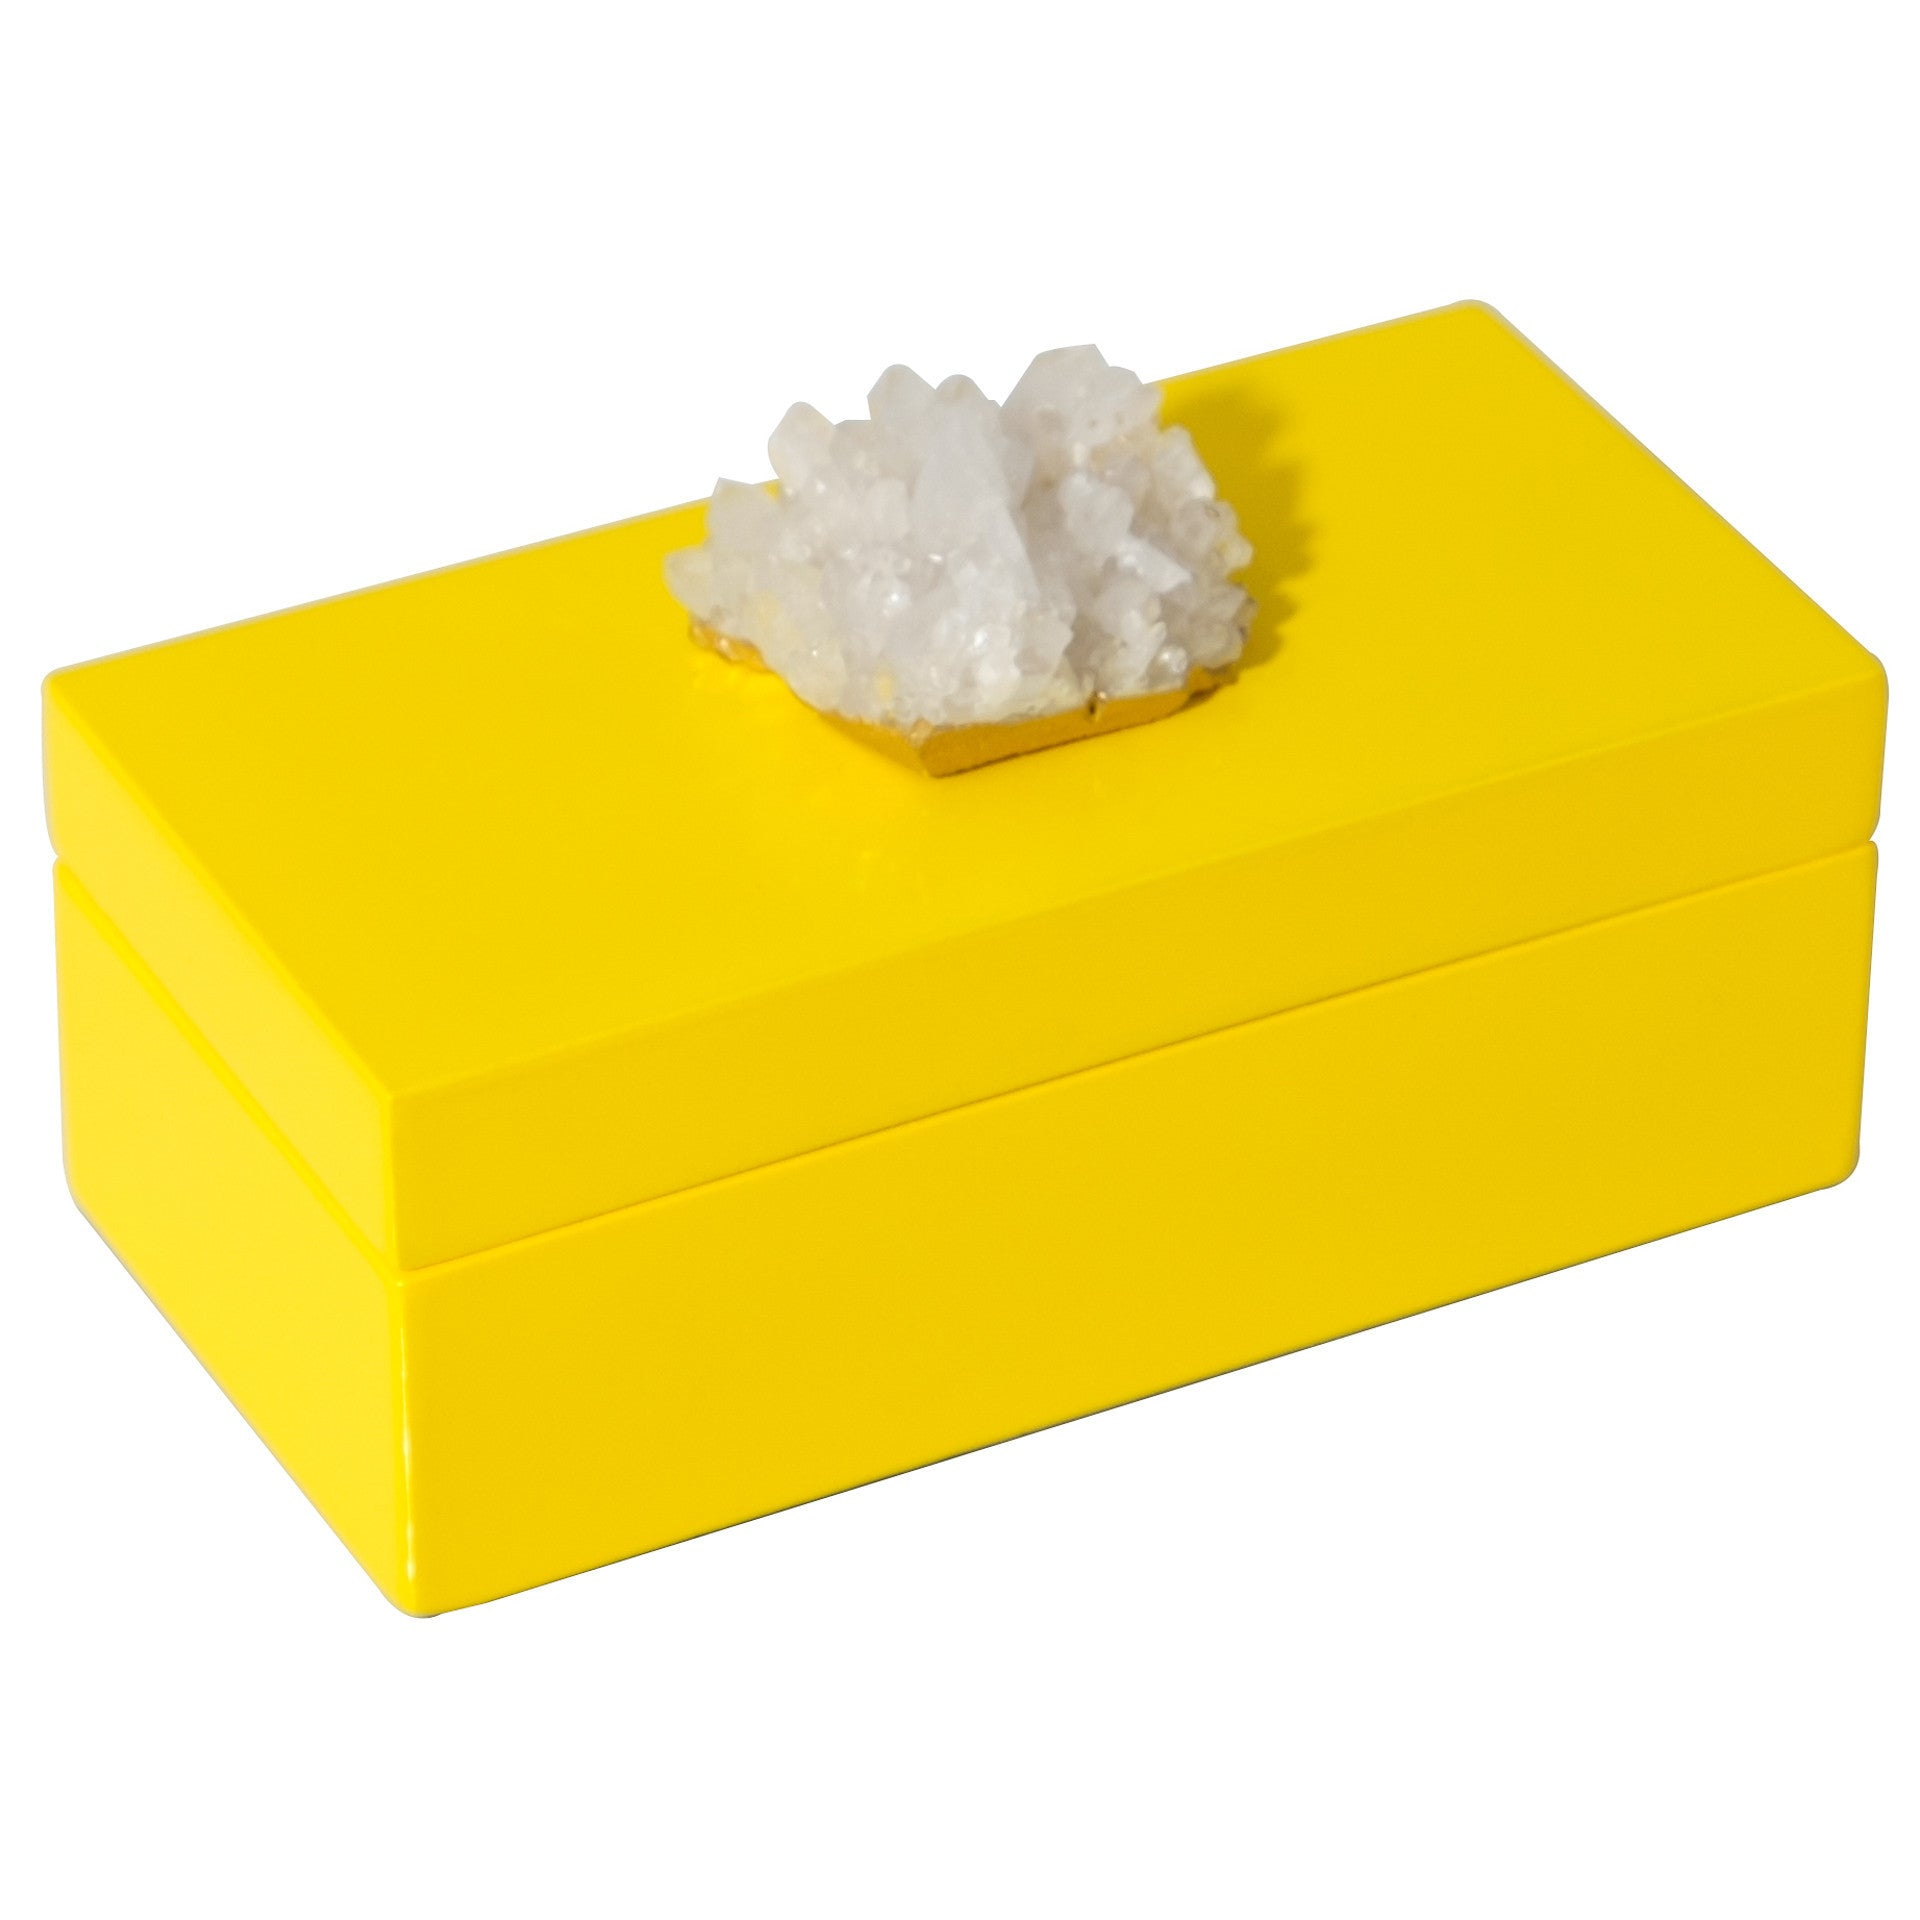 Medium Yellow Lacquer Box with Himalayan Crystal